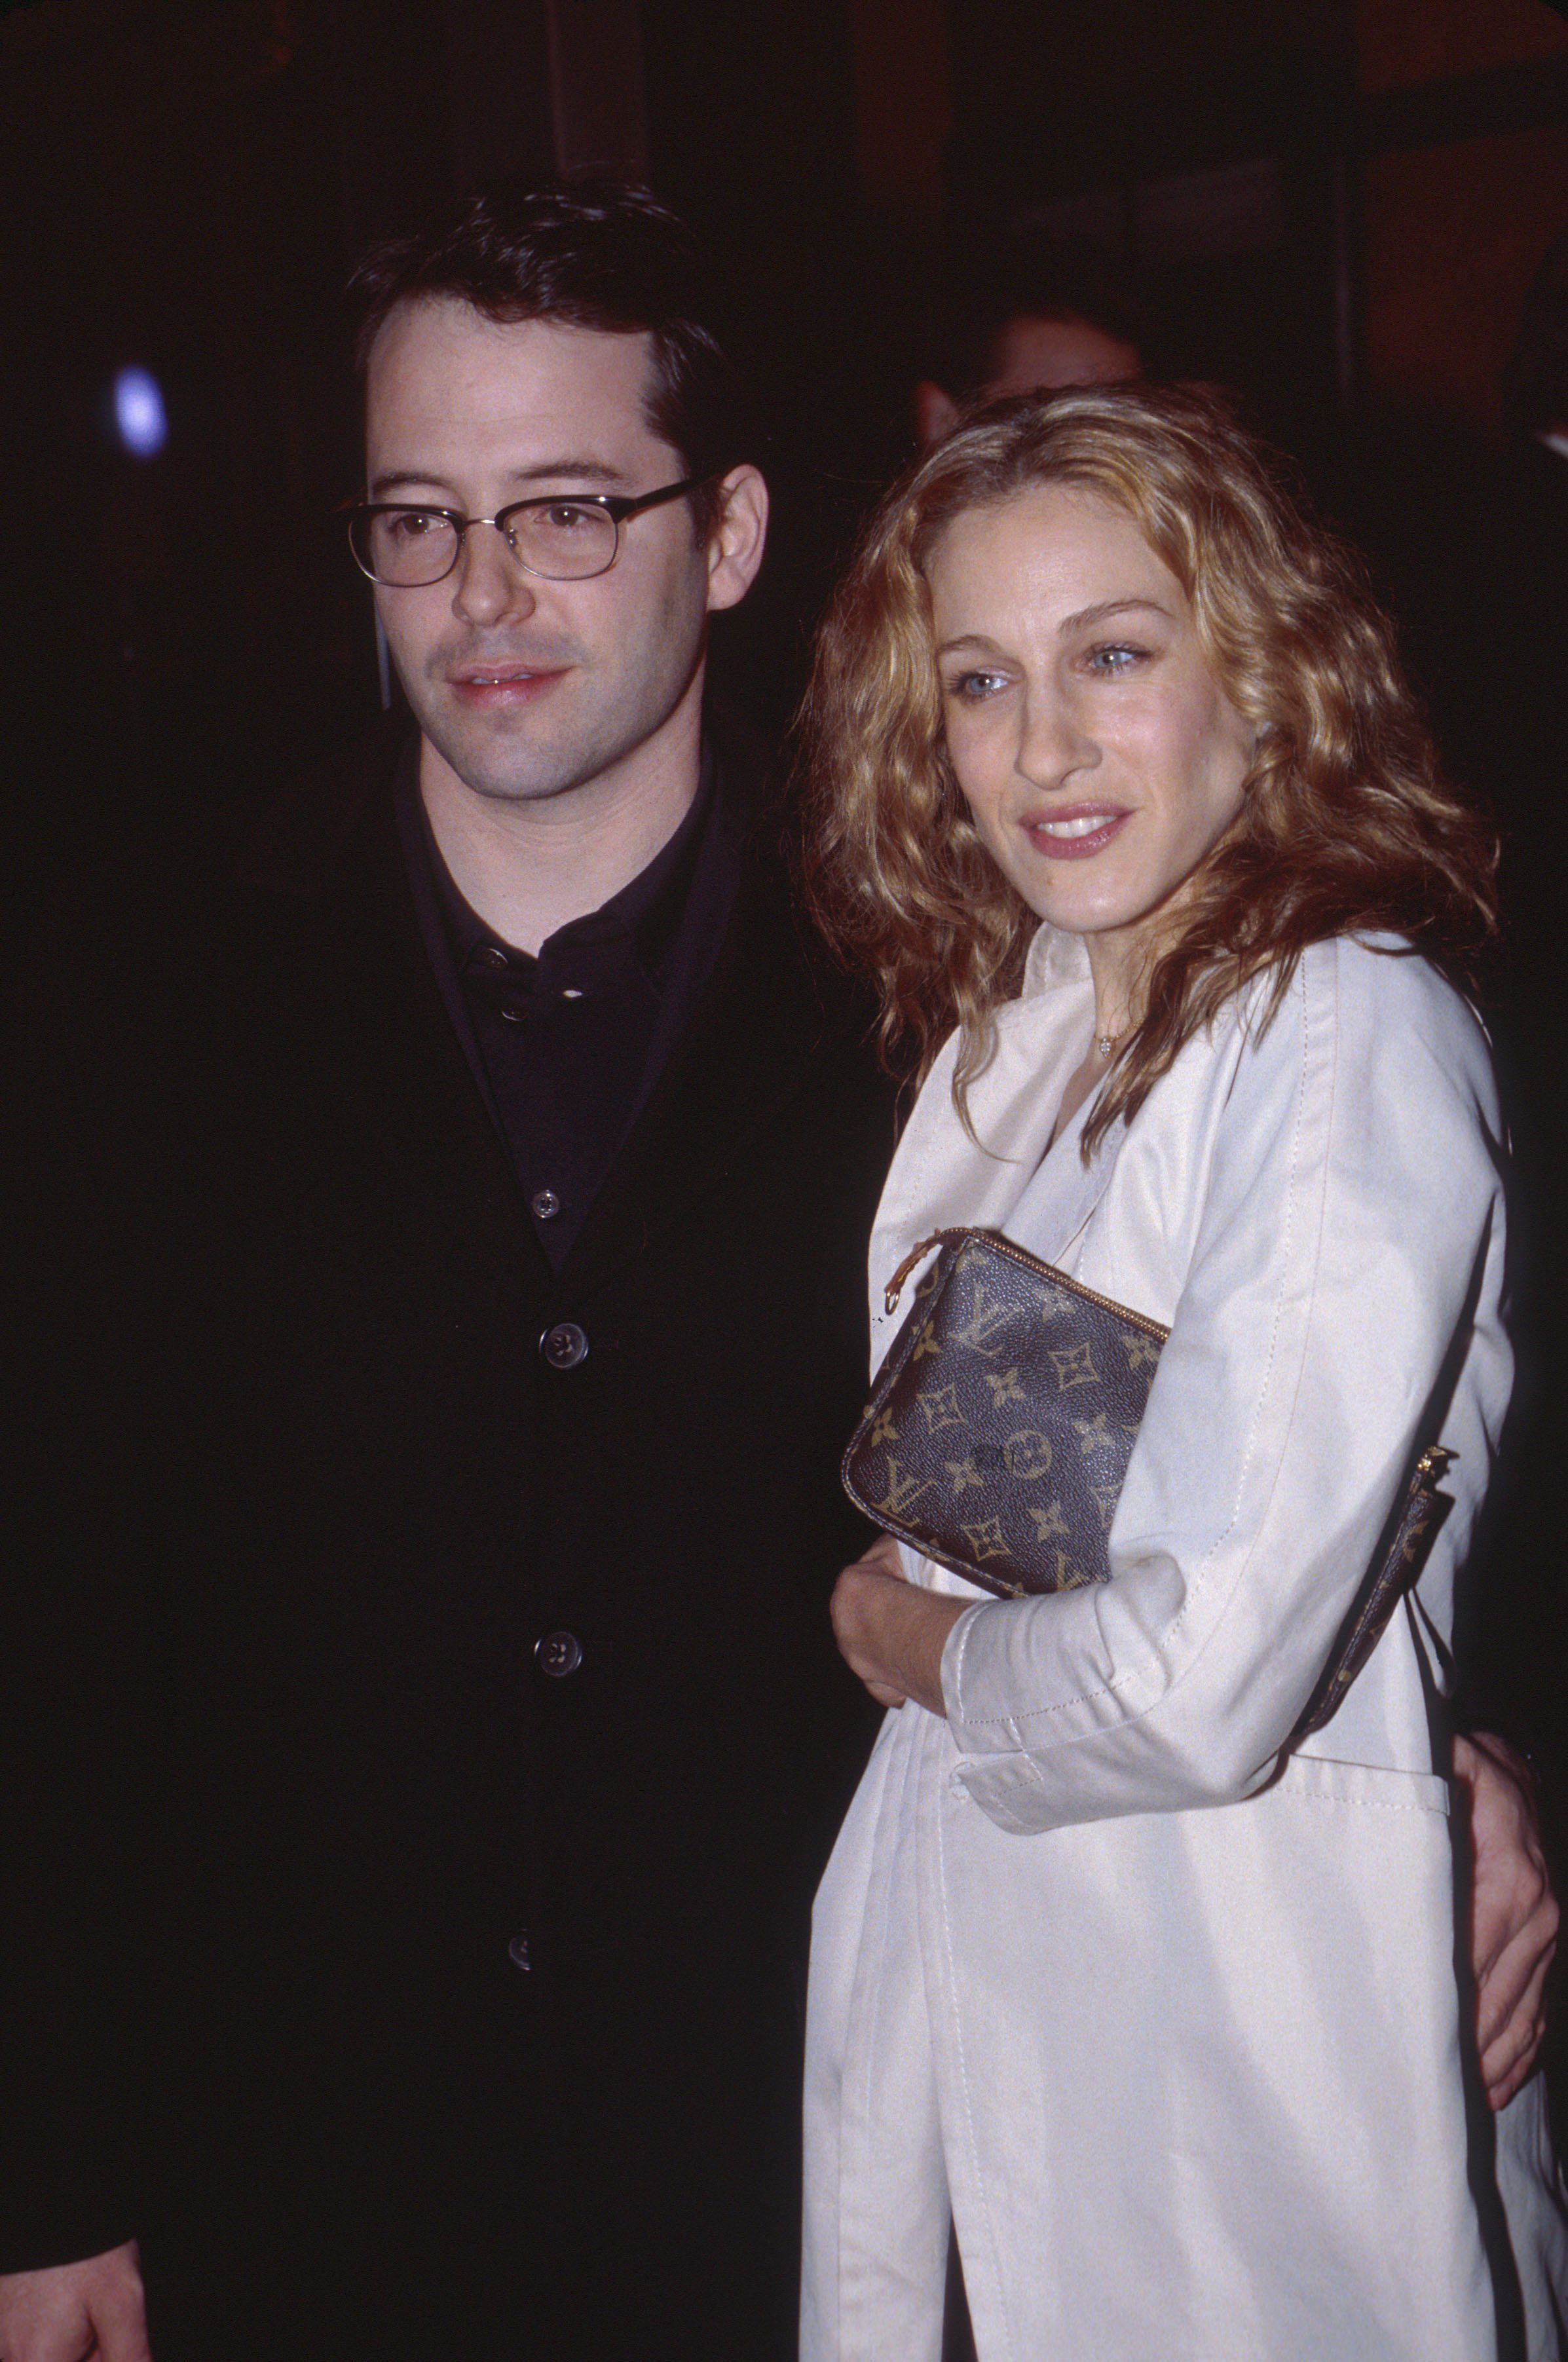 Matthew Broderick and Sarah Jessica Parker at the premiere of The Sopranos in New York on May 1, 2000. | Source: Getty Images City